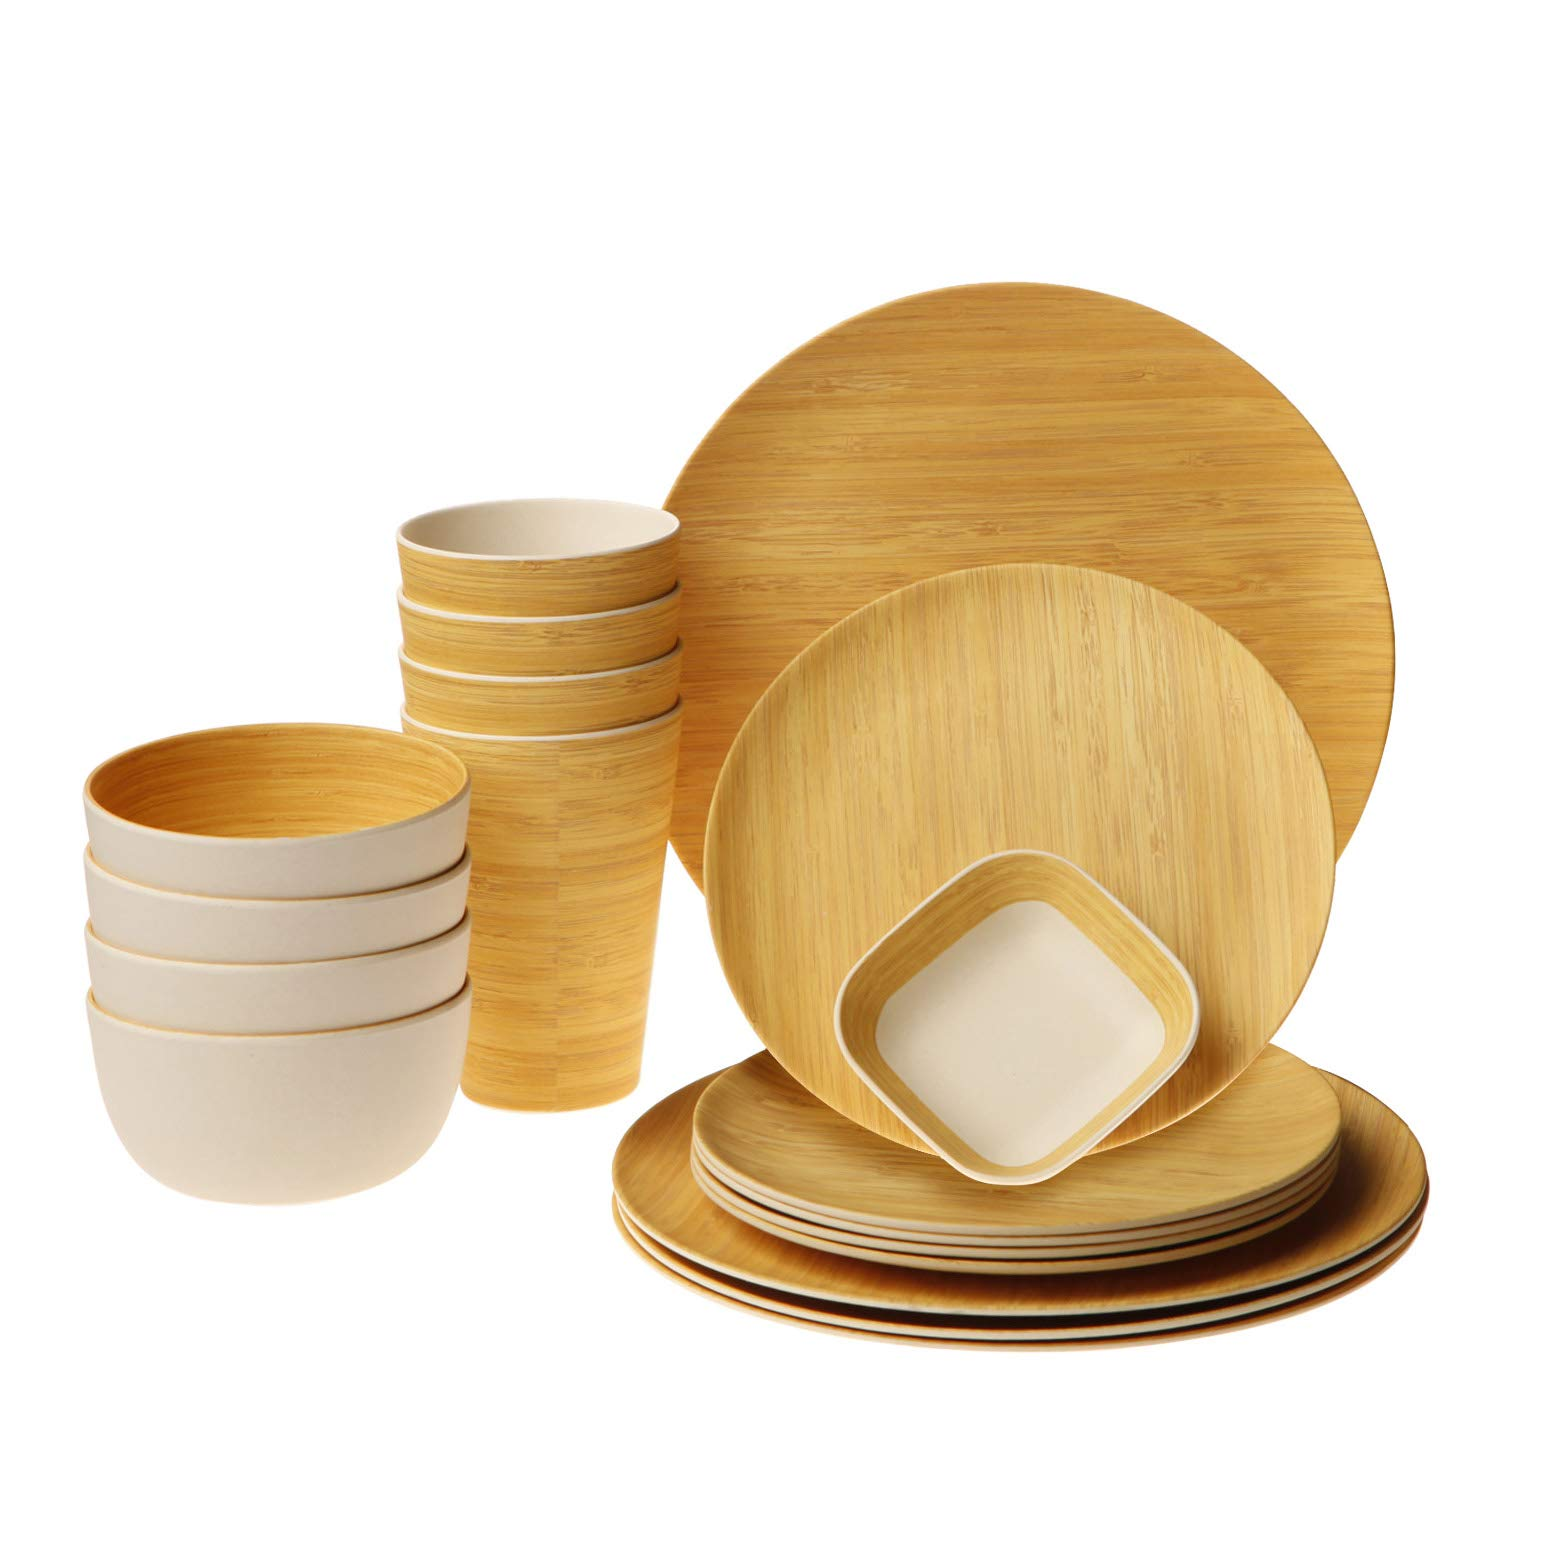 Earth's Dreams Reusable Bamboo Dinnerware Set - Serves 4 with Organic Bamboo Fiber Plates, Cups, Bowls and Bonus Square Saucer (17 Pieces)